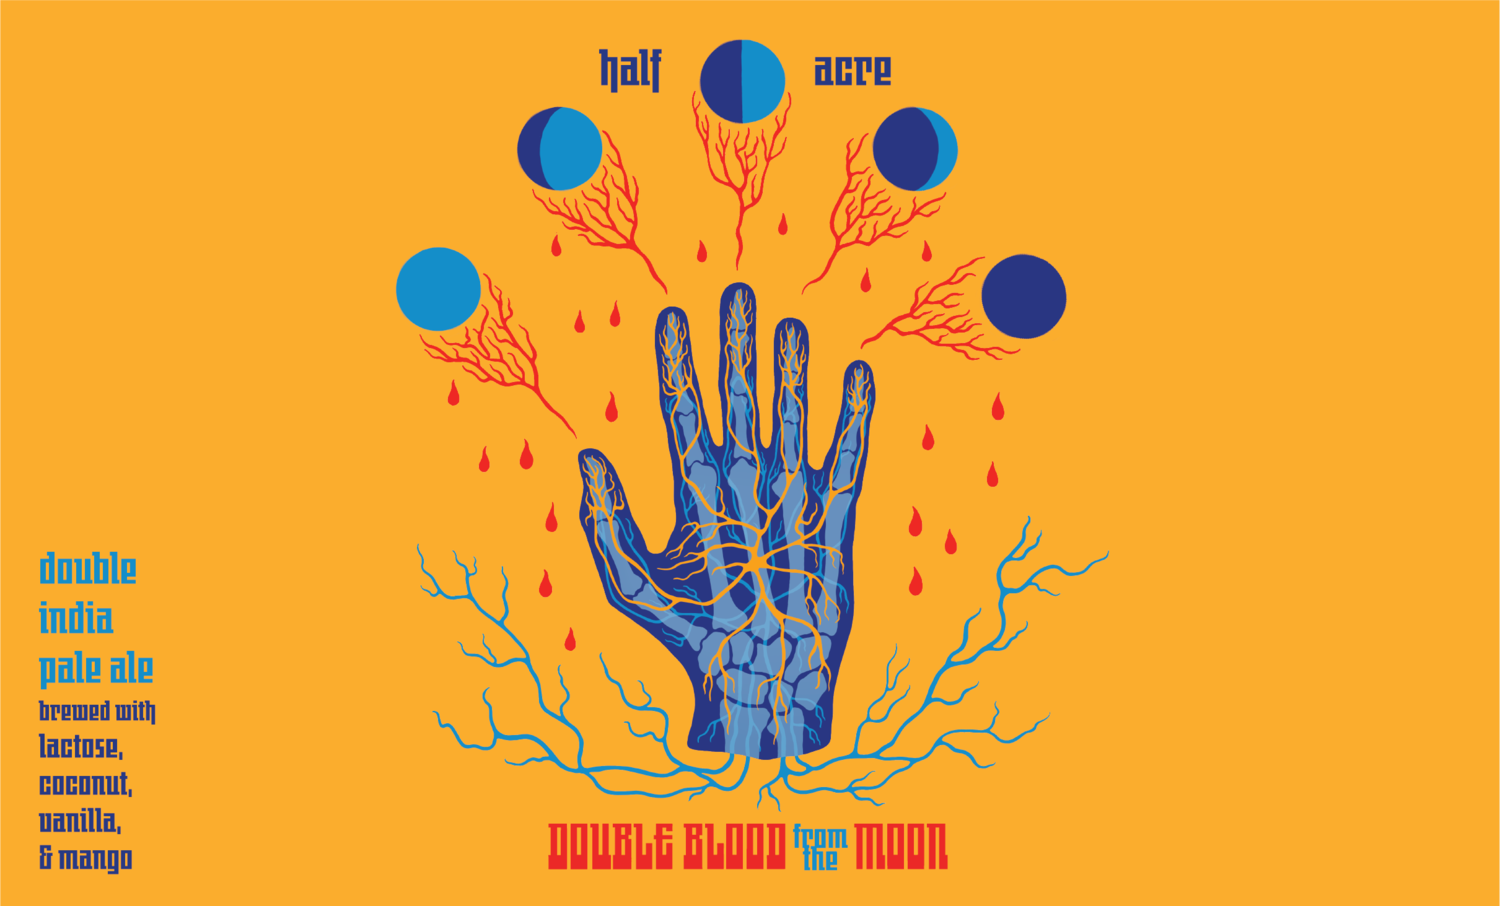 Double Blood From The Moon — HALF ACRE